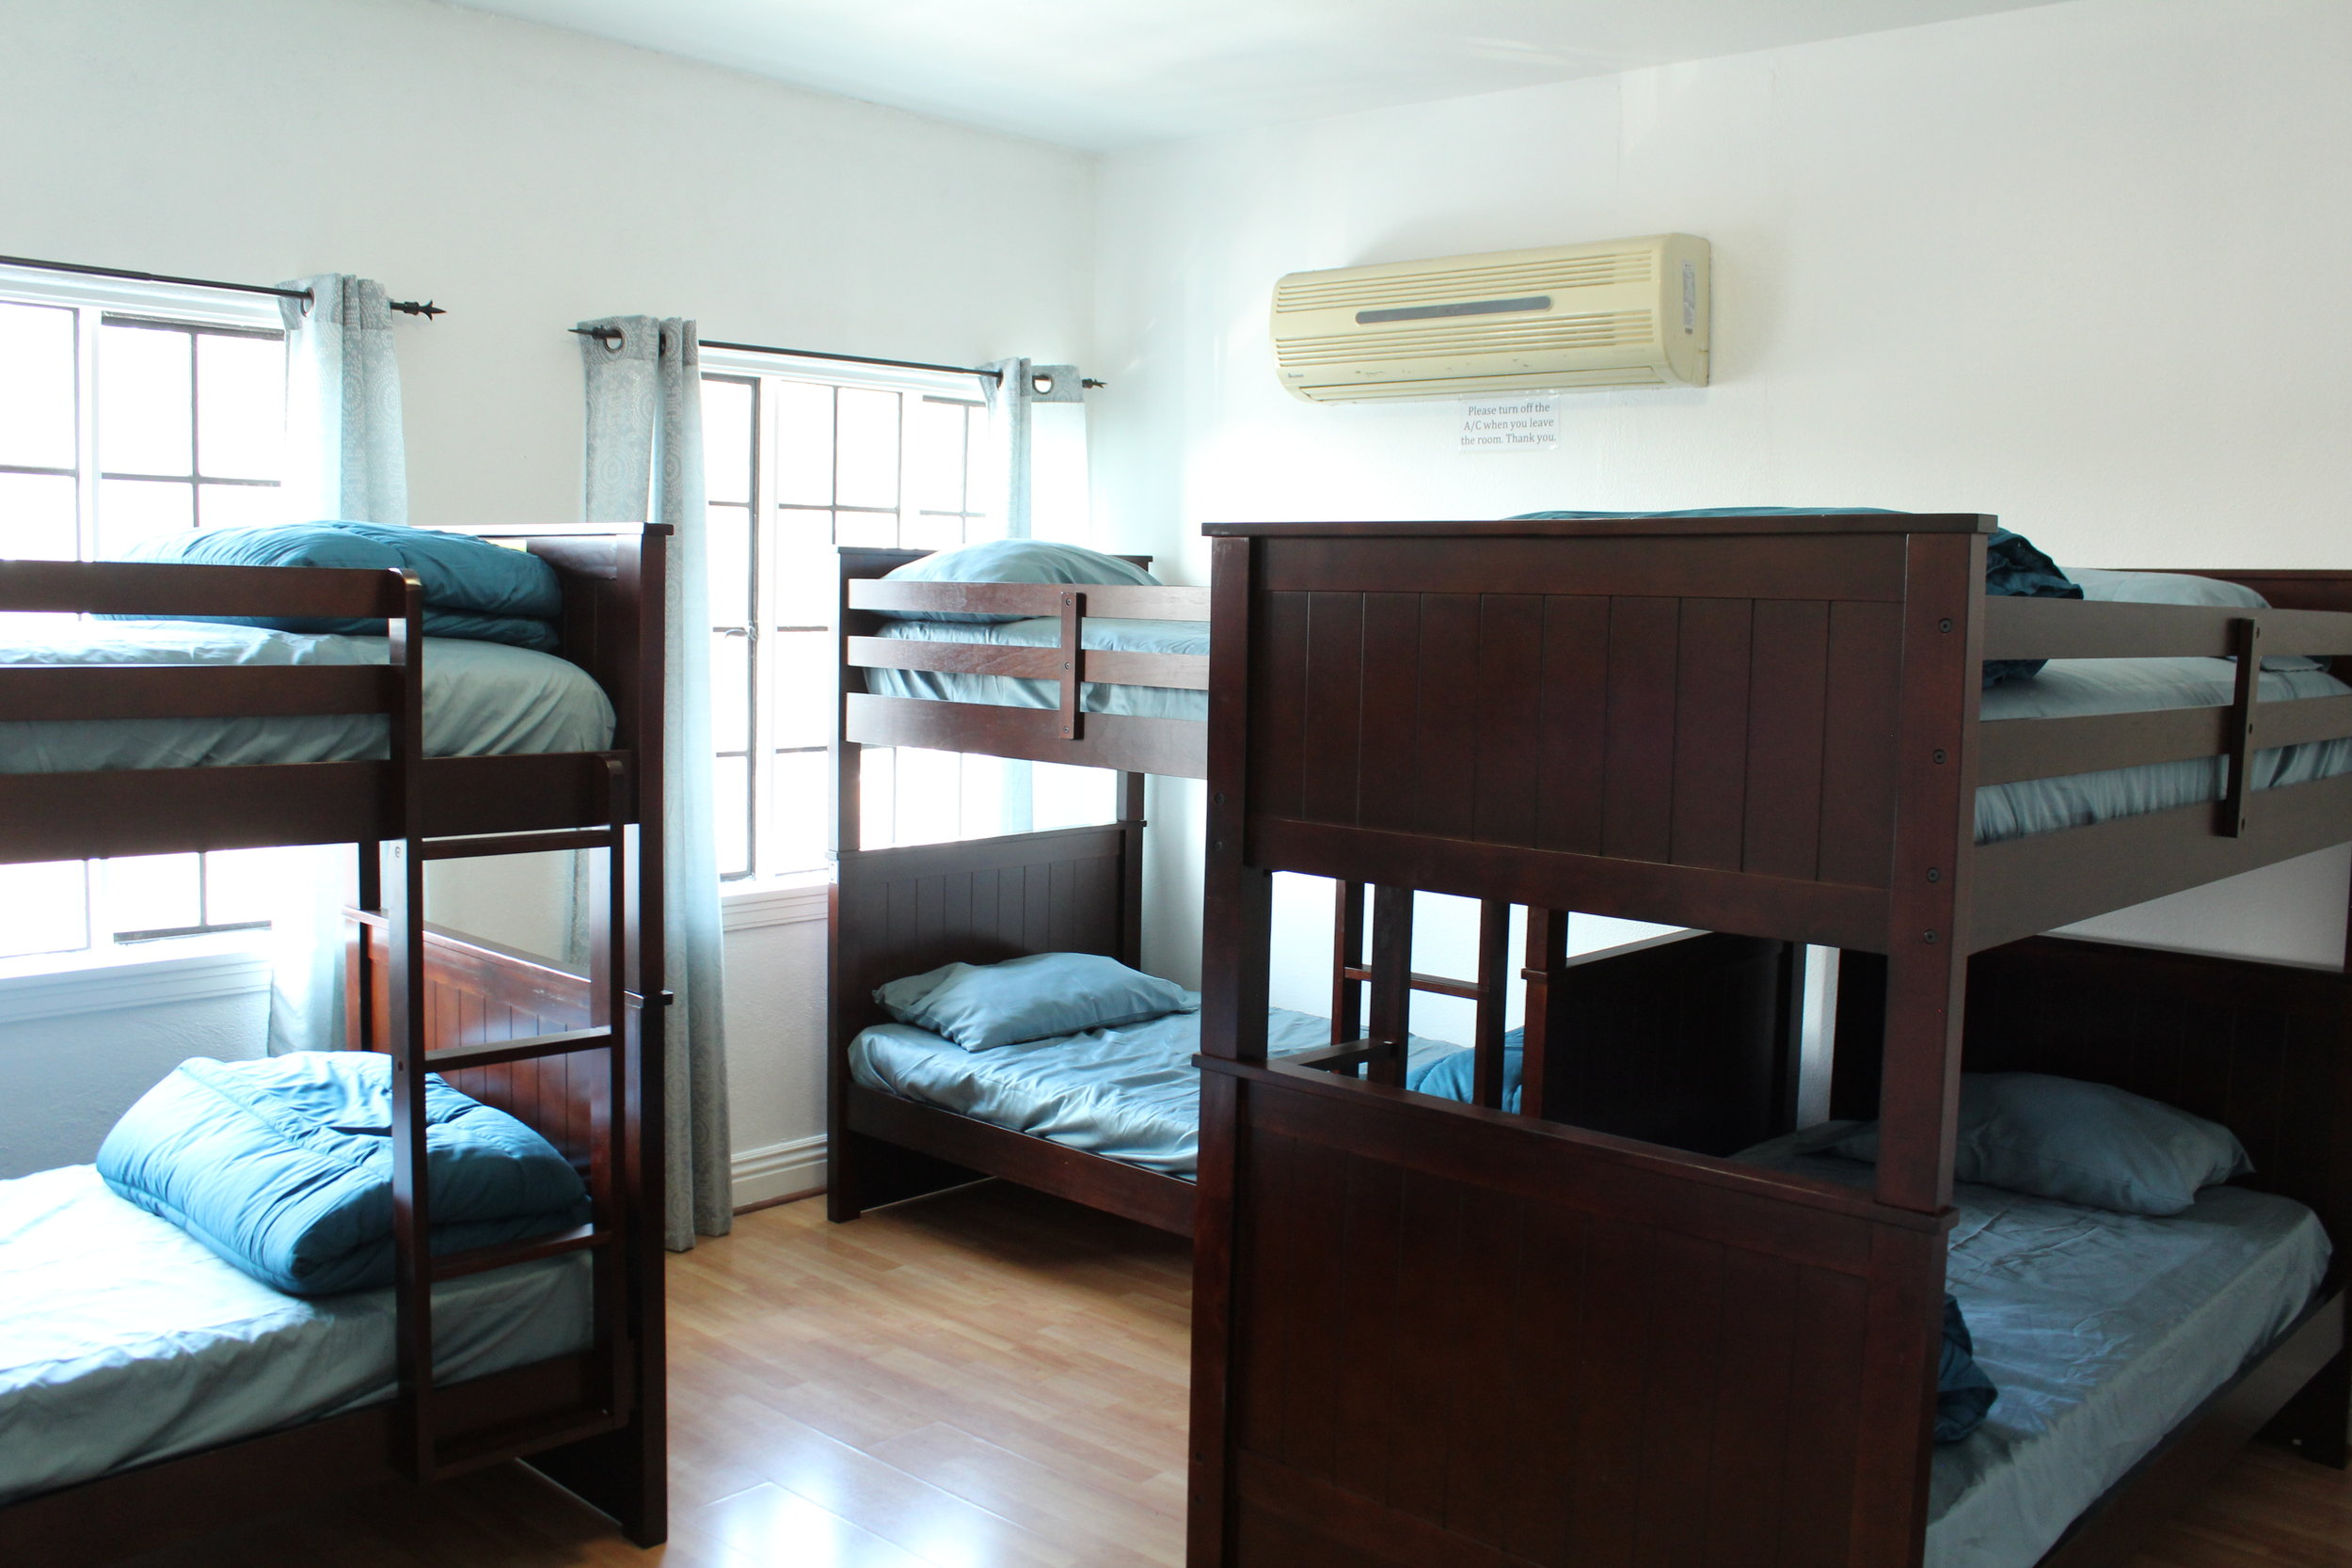 Image of Shared Dormitory Room.JPG